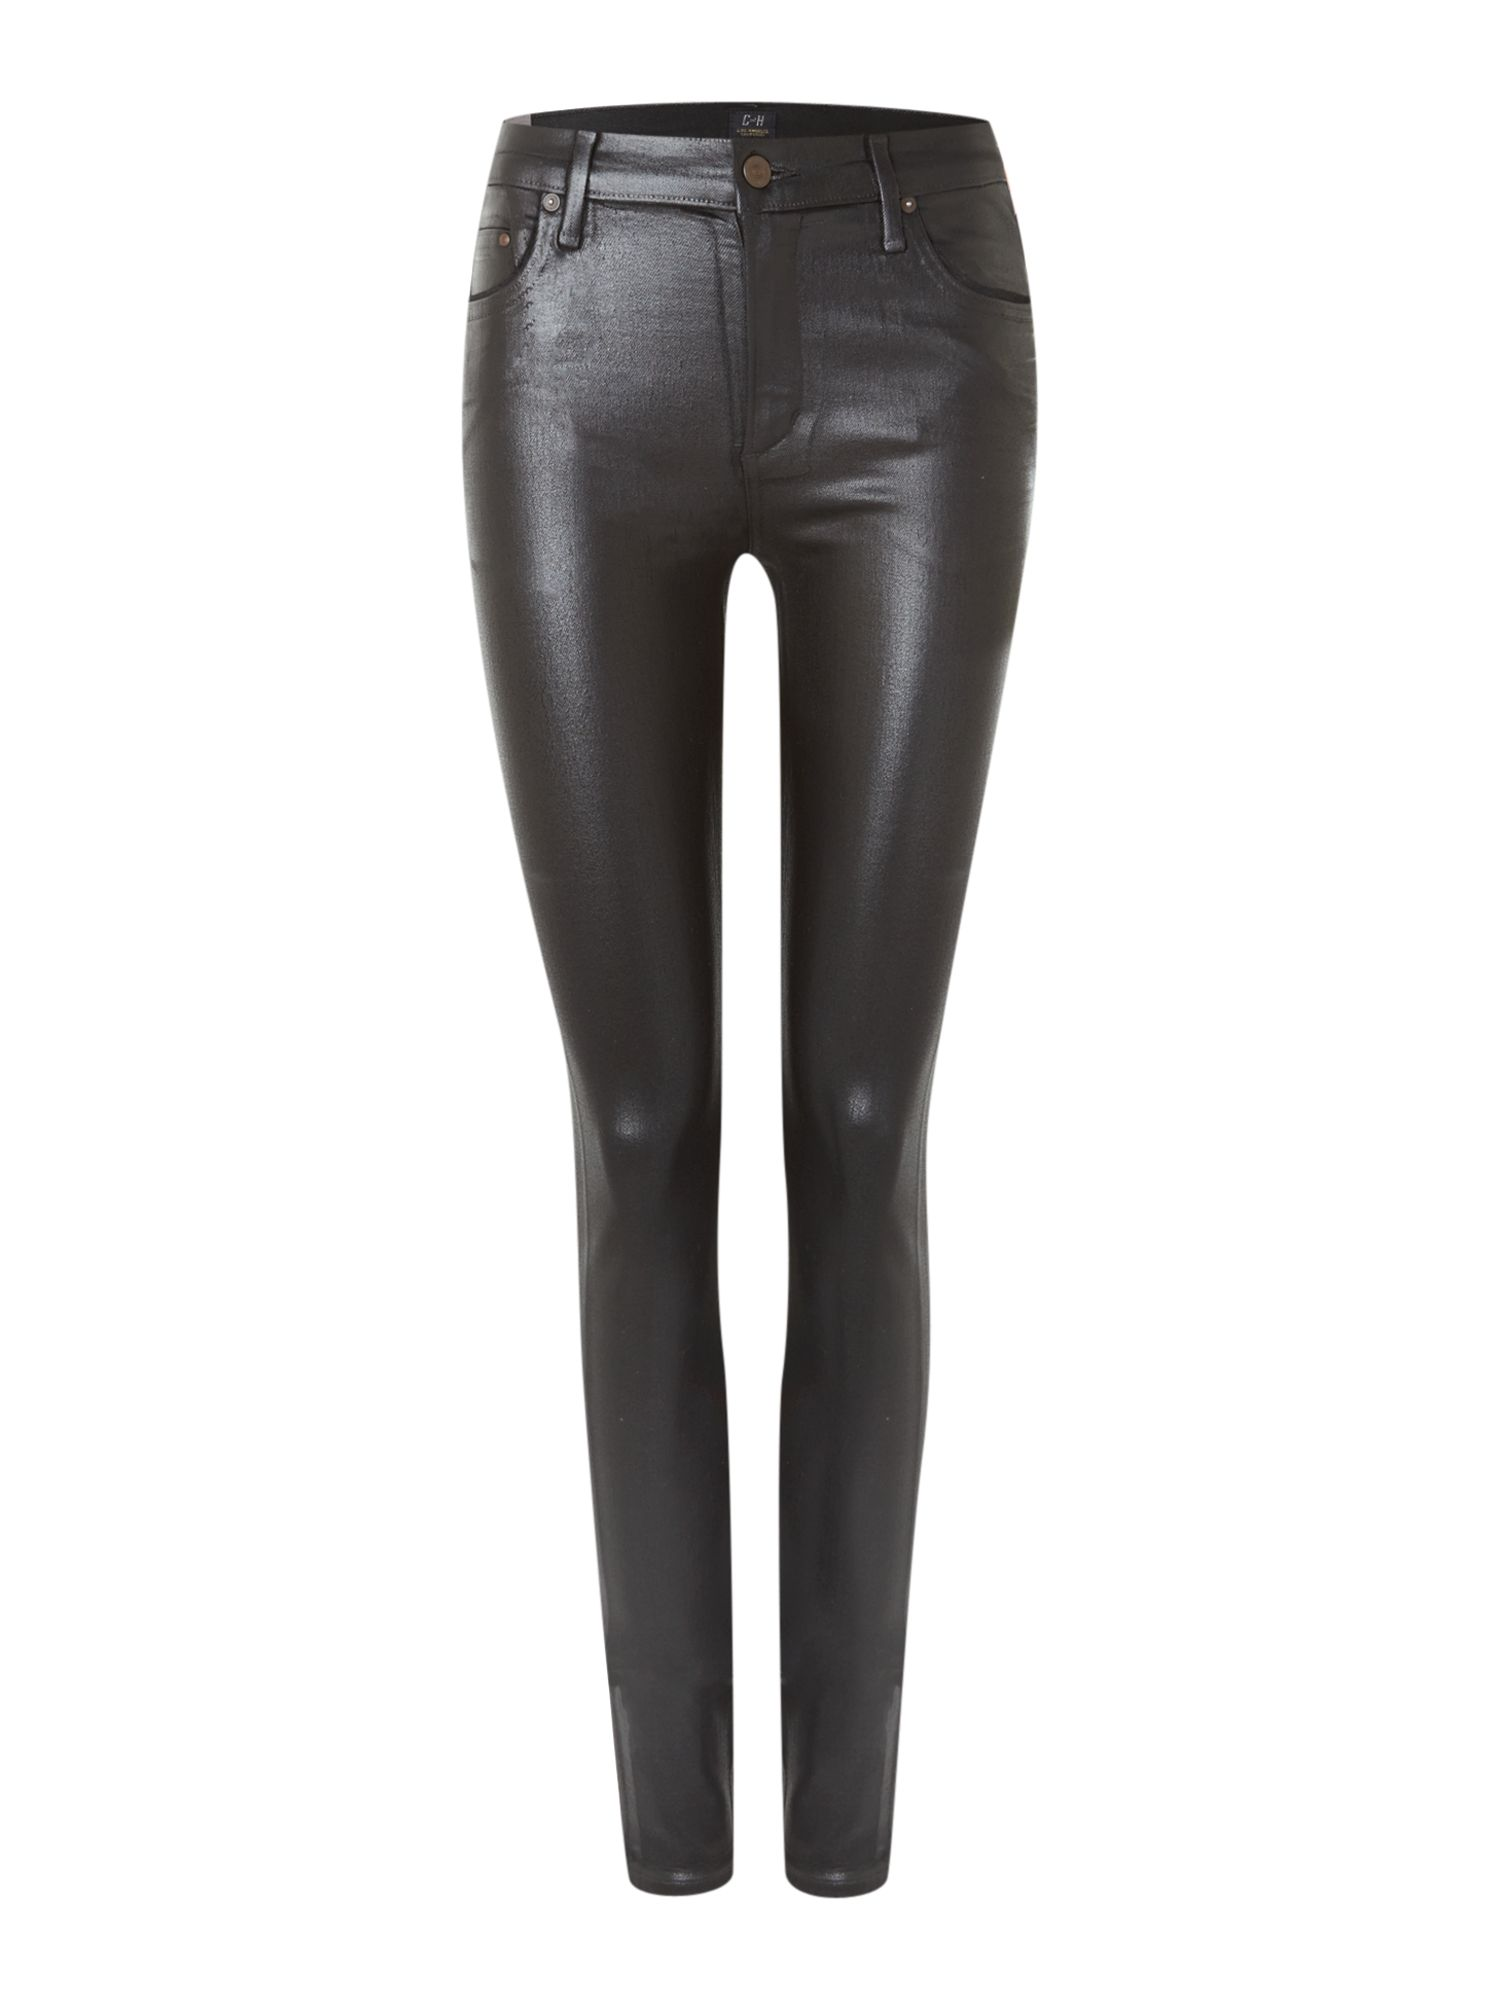 Rocket high rise coated skinny jeans